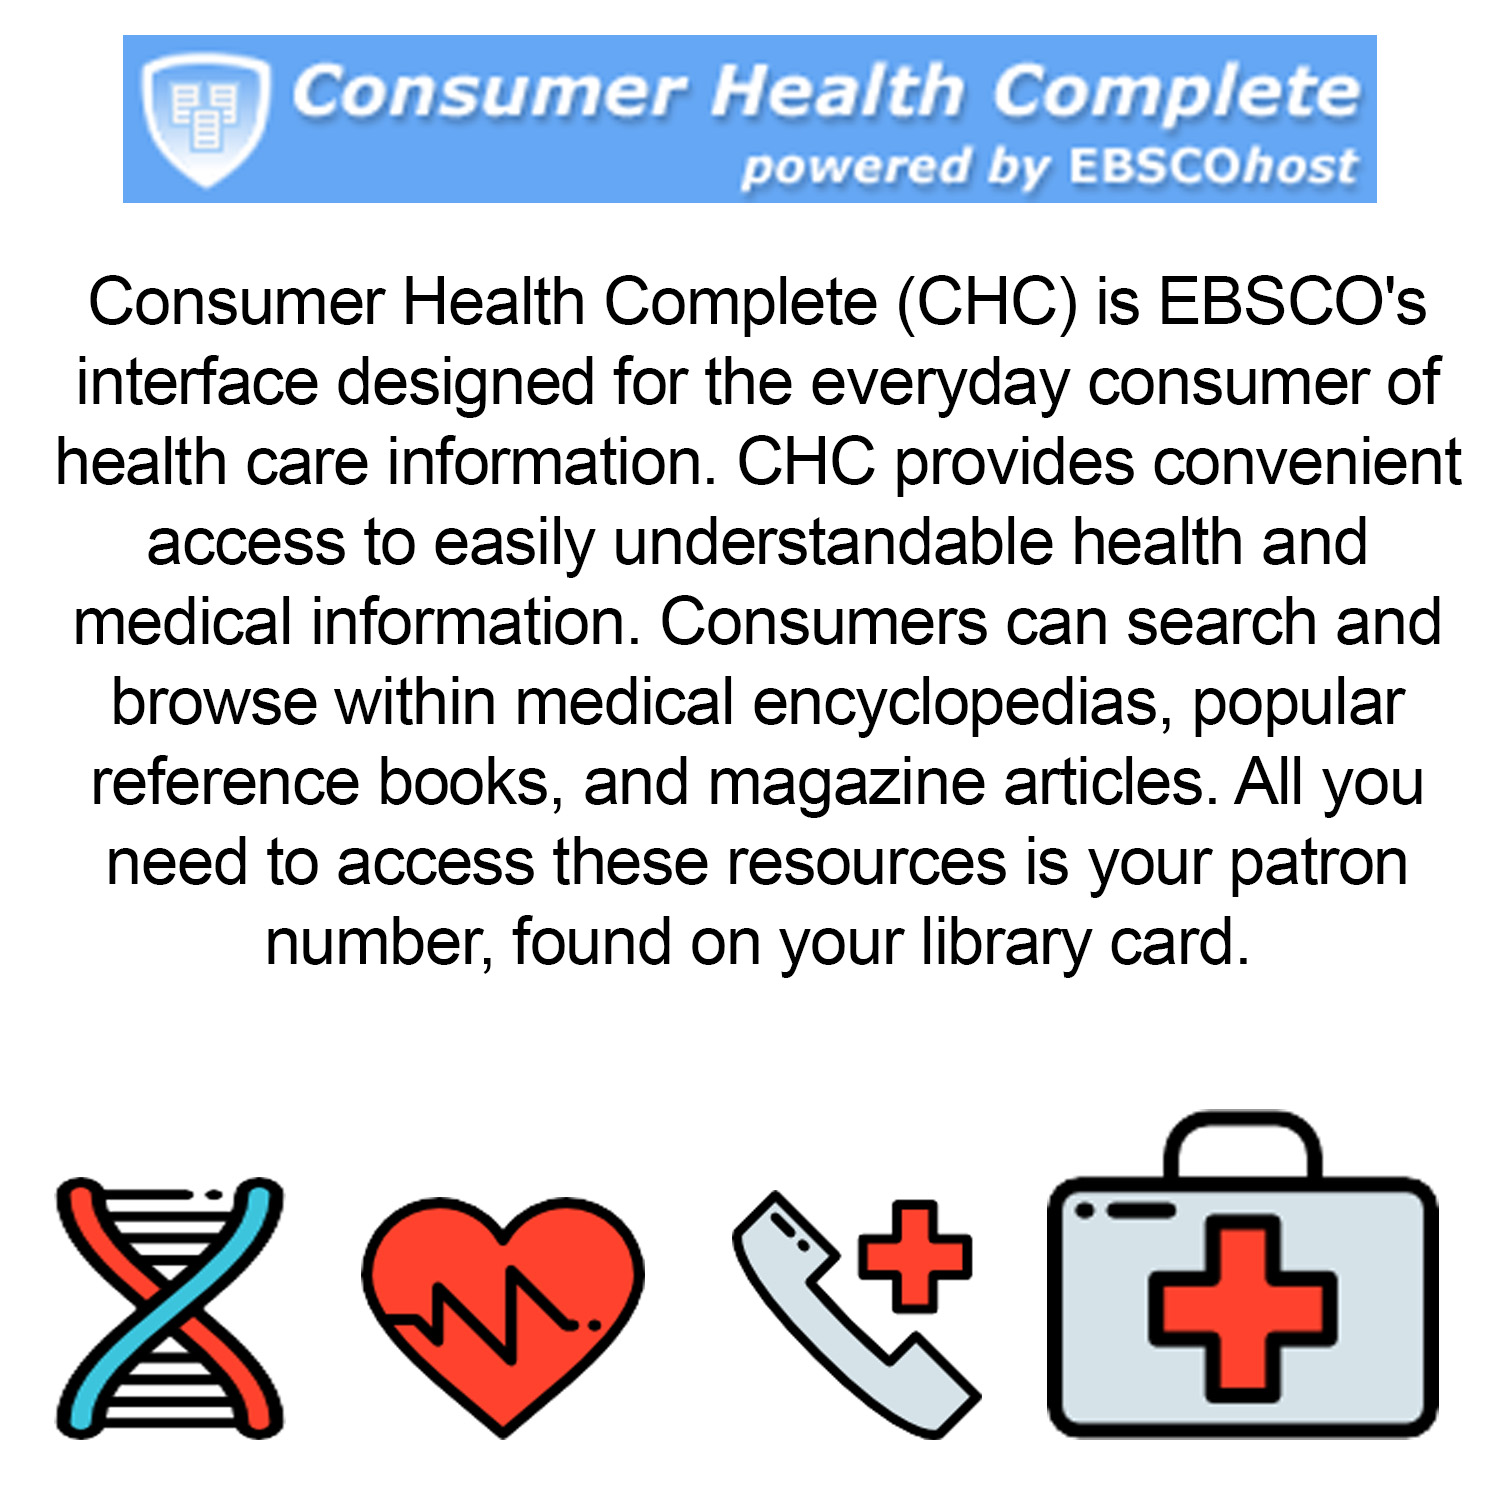 Small image with a synopsis of Ebsco consumer health databasewith clickable link